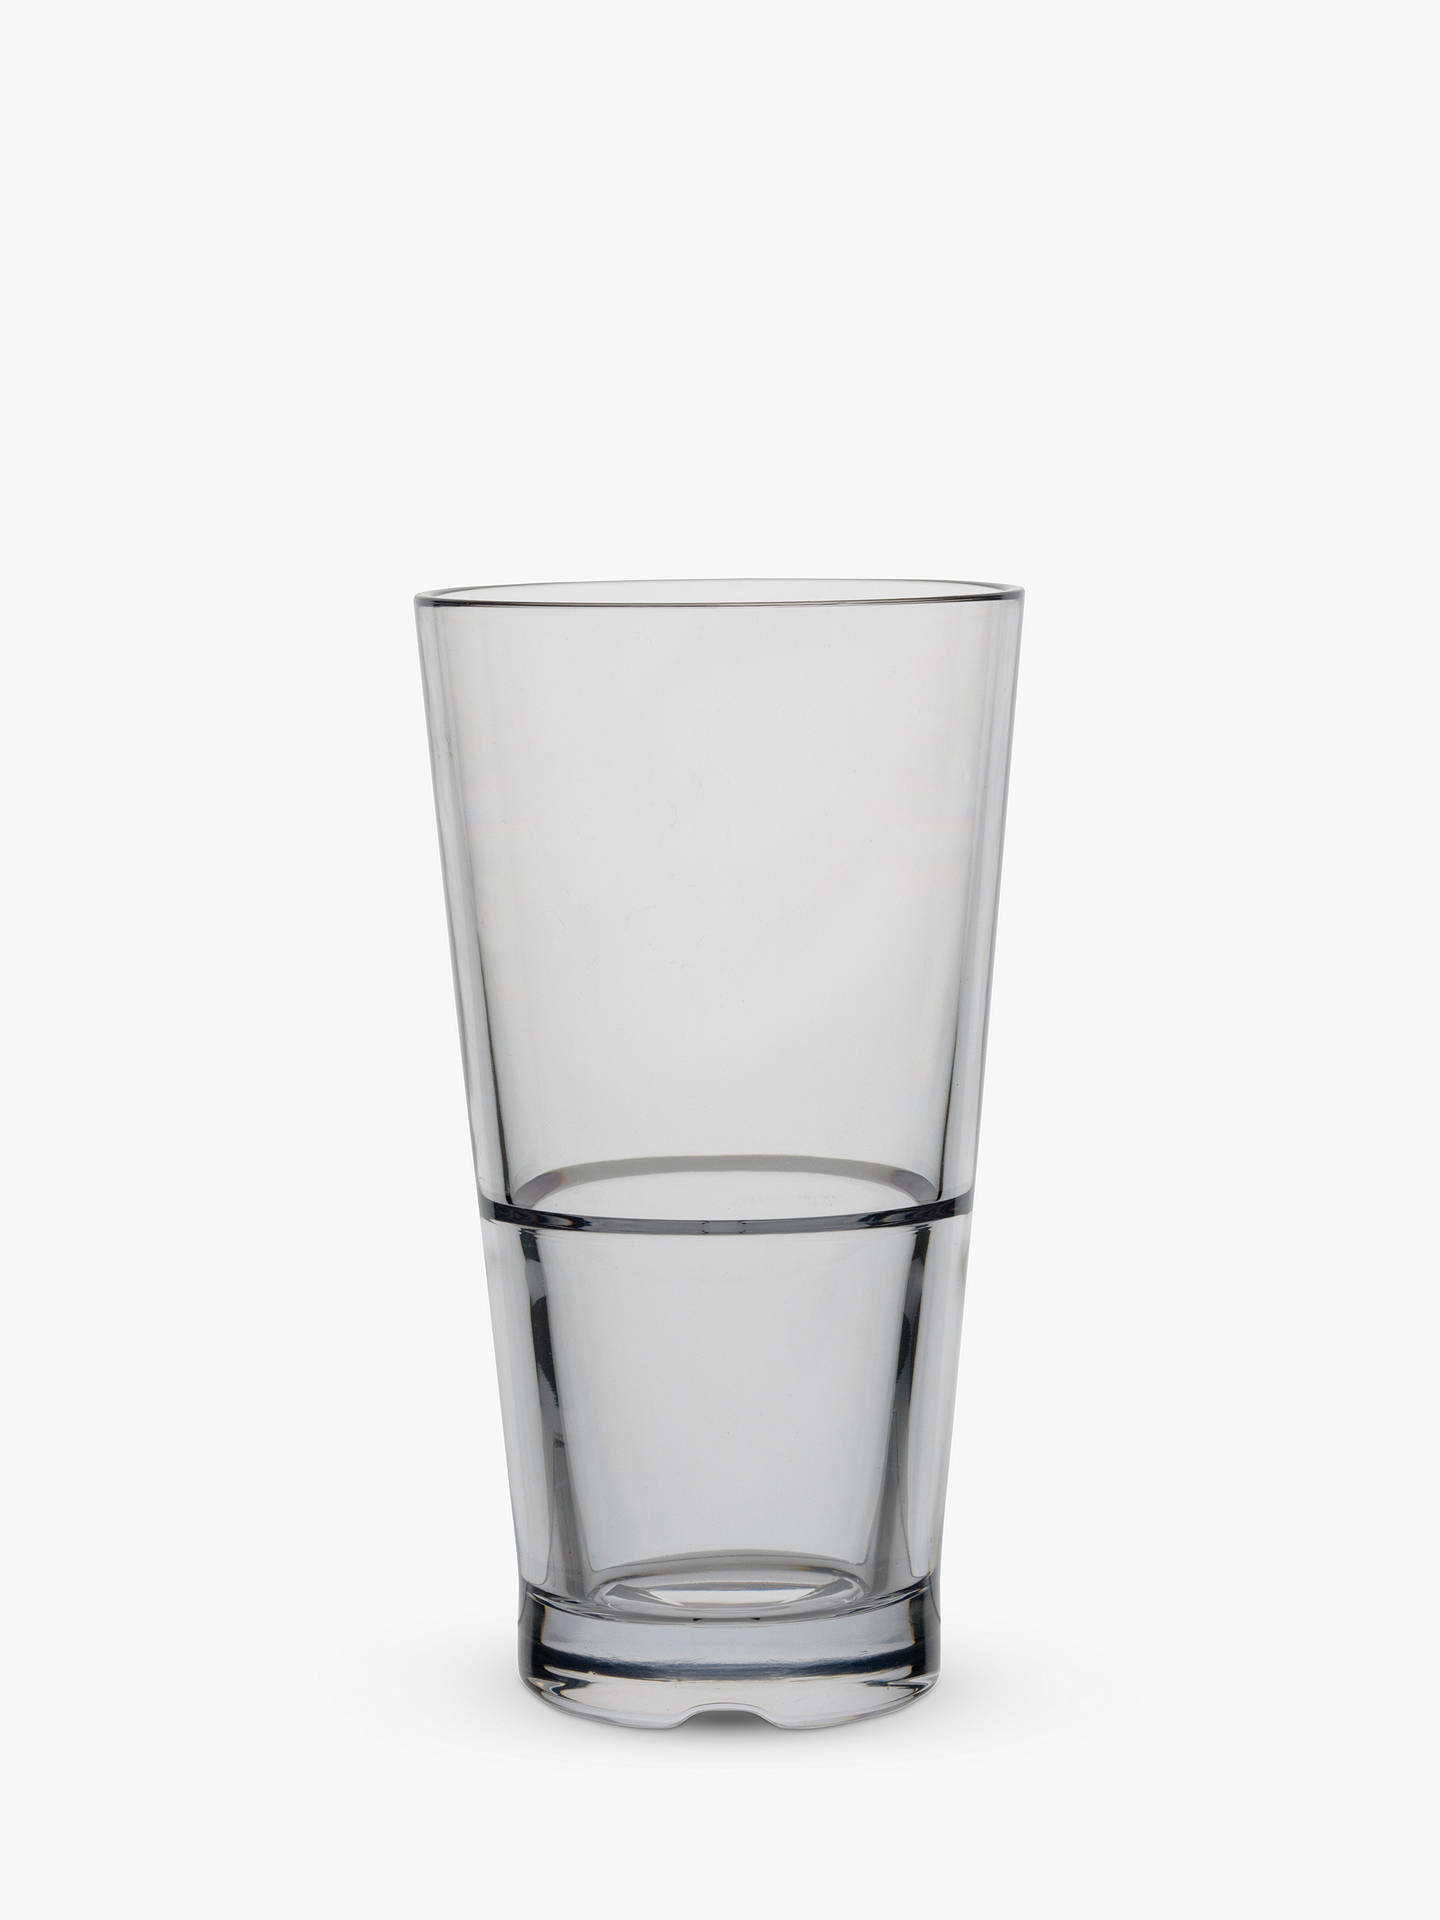 BuyStrahl Capella Stackable Plastic Picnic Highball Glass, Clear, 400ml Online at johnlewis.com